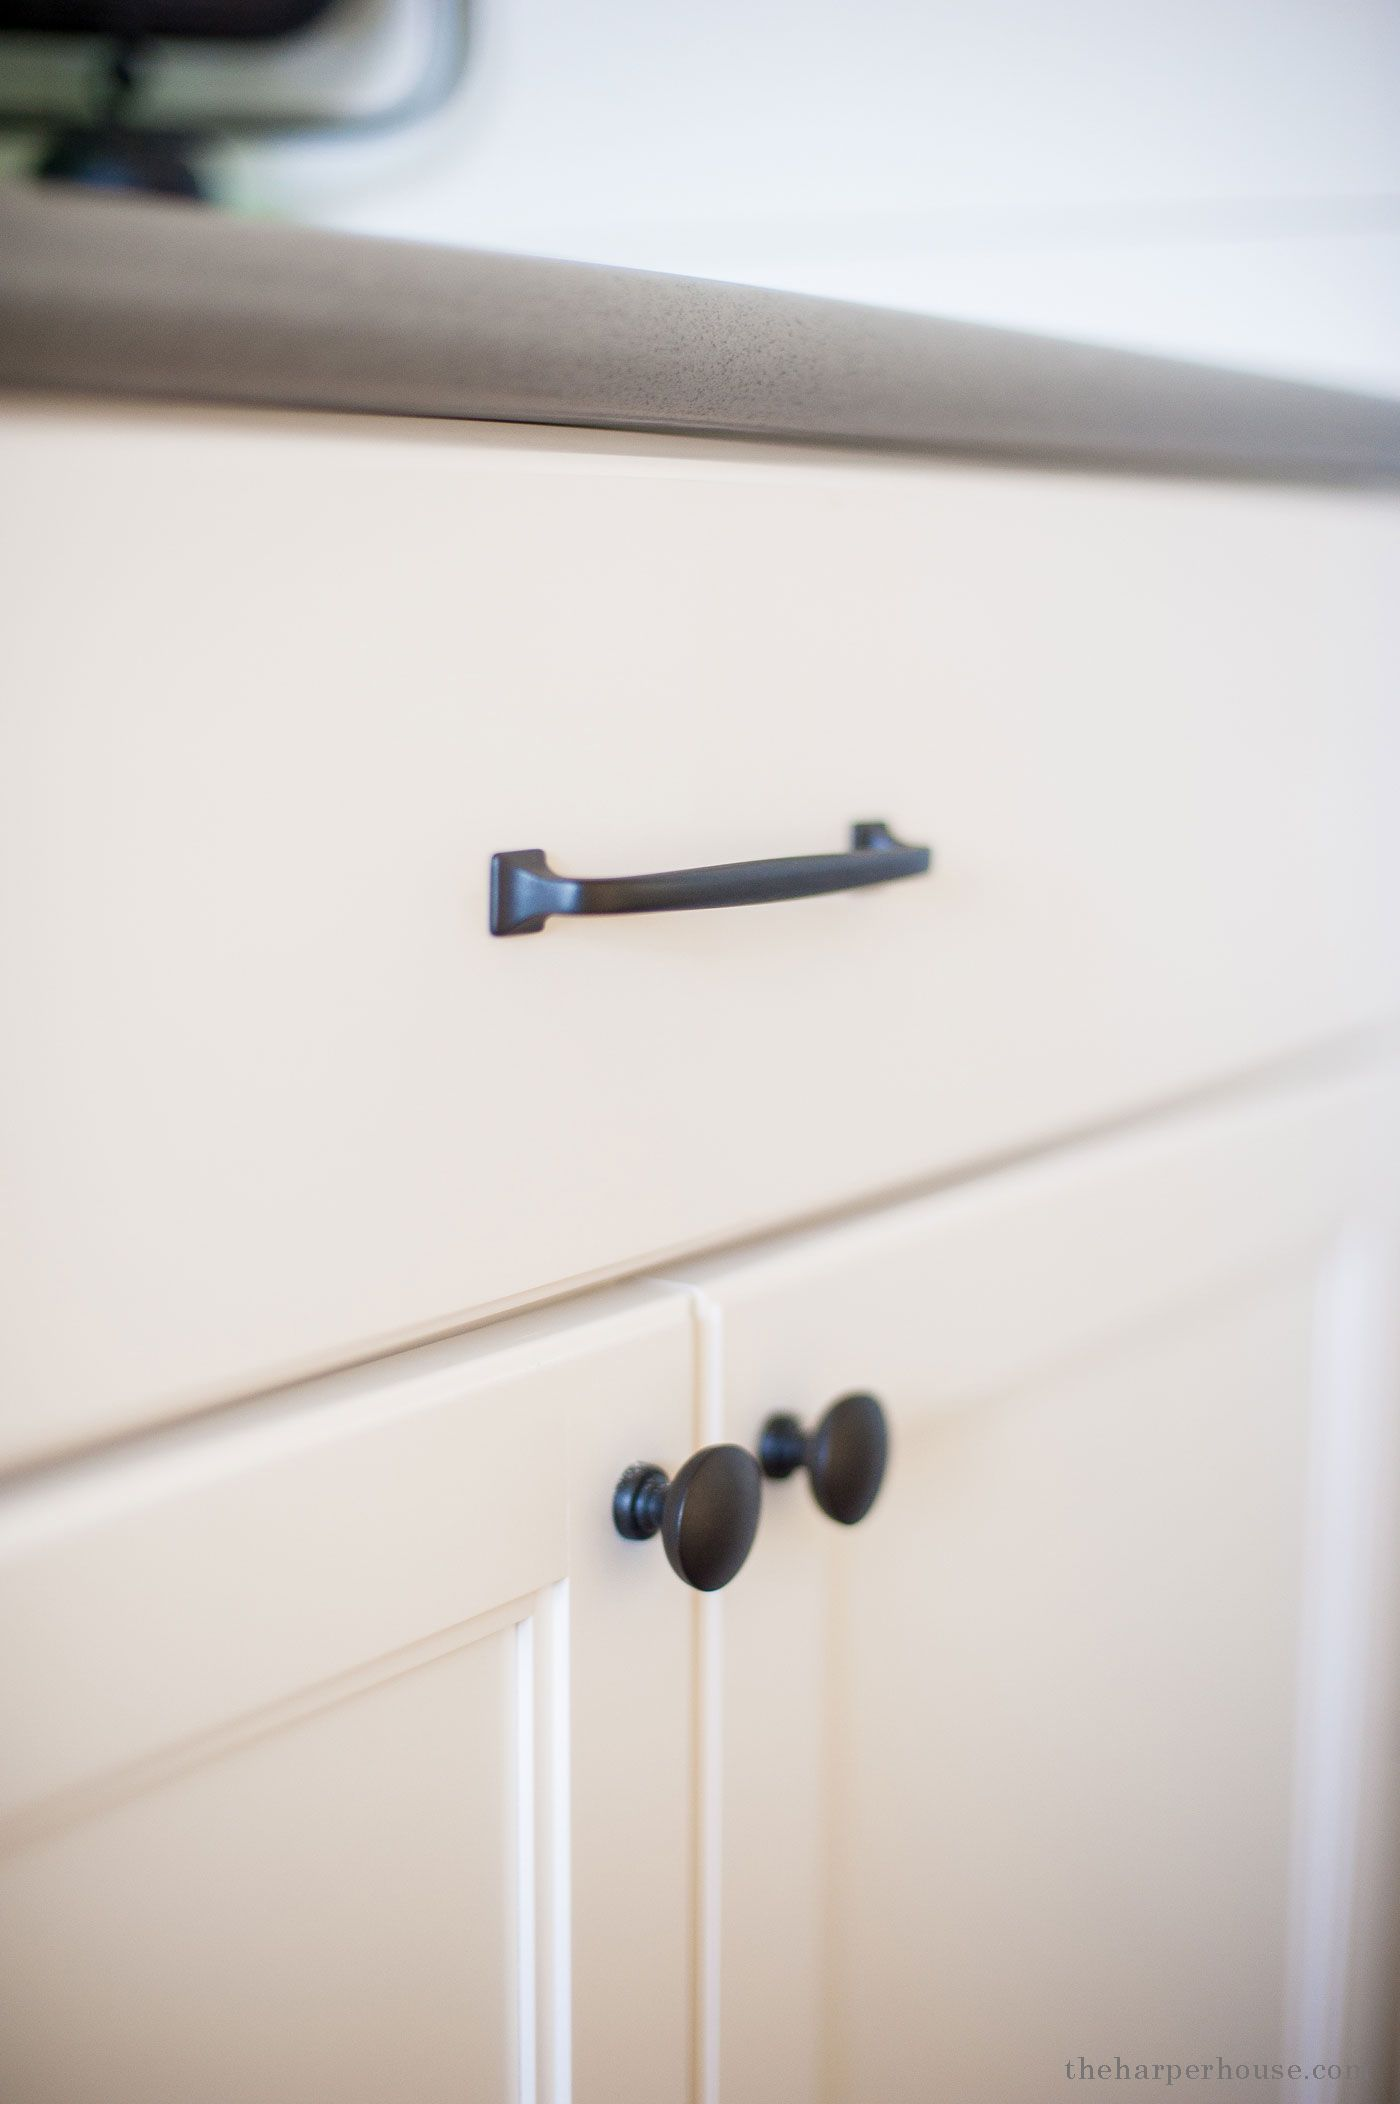 Kitchen Pulls Ashley Furniture Island Modern Farmhouse Details Best Of The Harper House 5 Cabinet From Amazon For Only 2 70 Www Theharperhouse Com